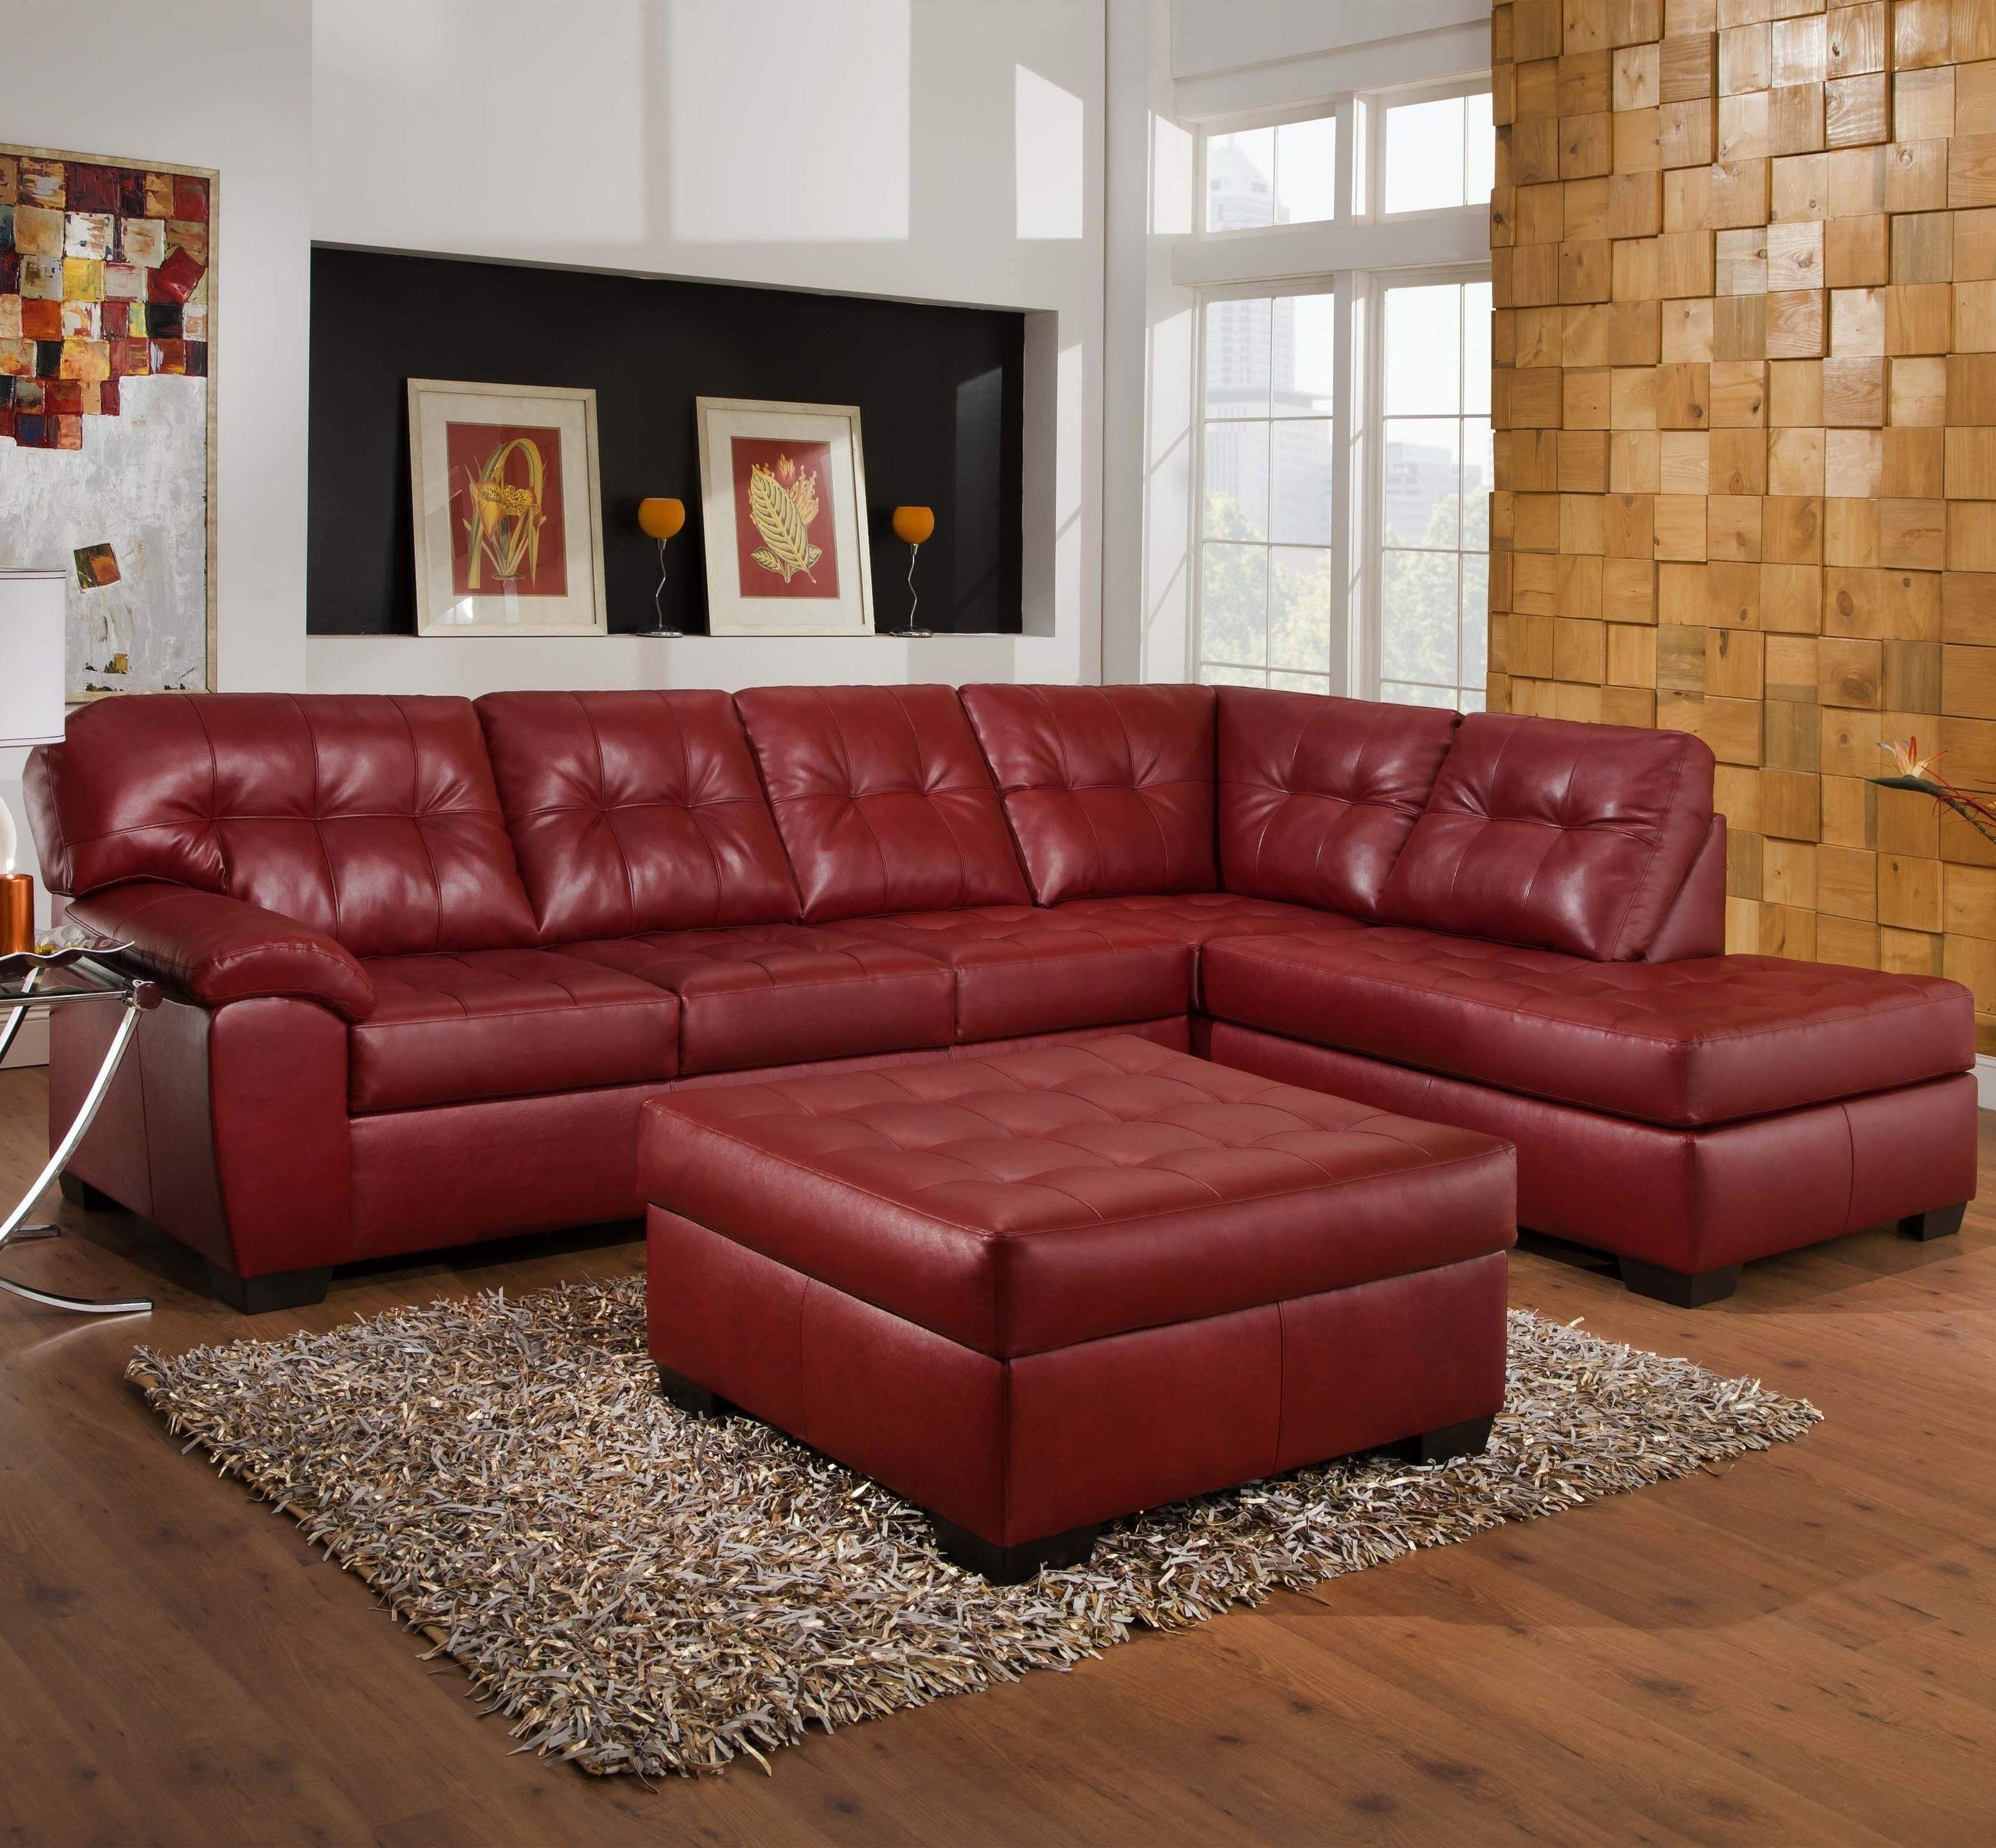 9569 2 Piece Sectional With Tufted Seats & Backsimmons Inside Red Sectional Sofas (View 8 of 10)